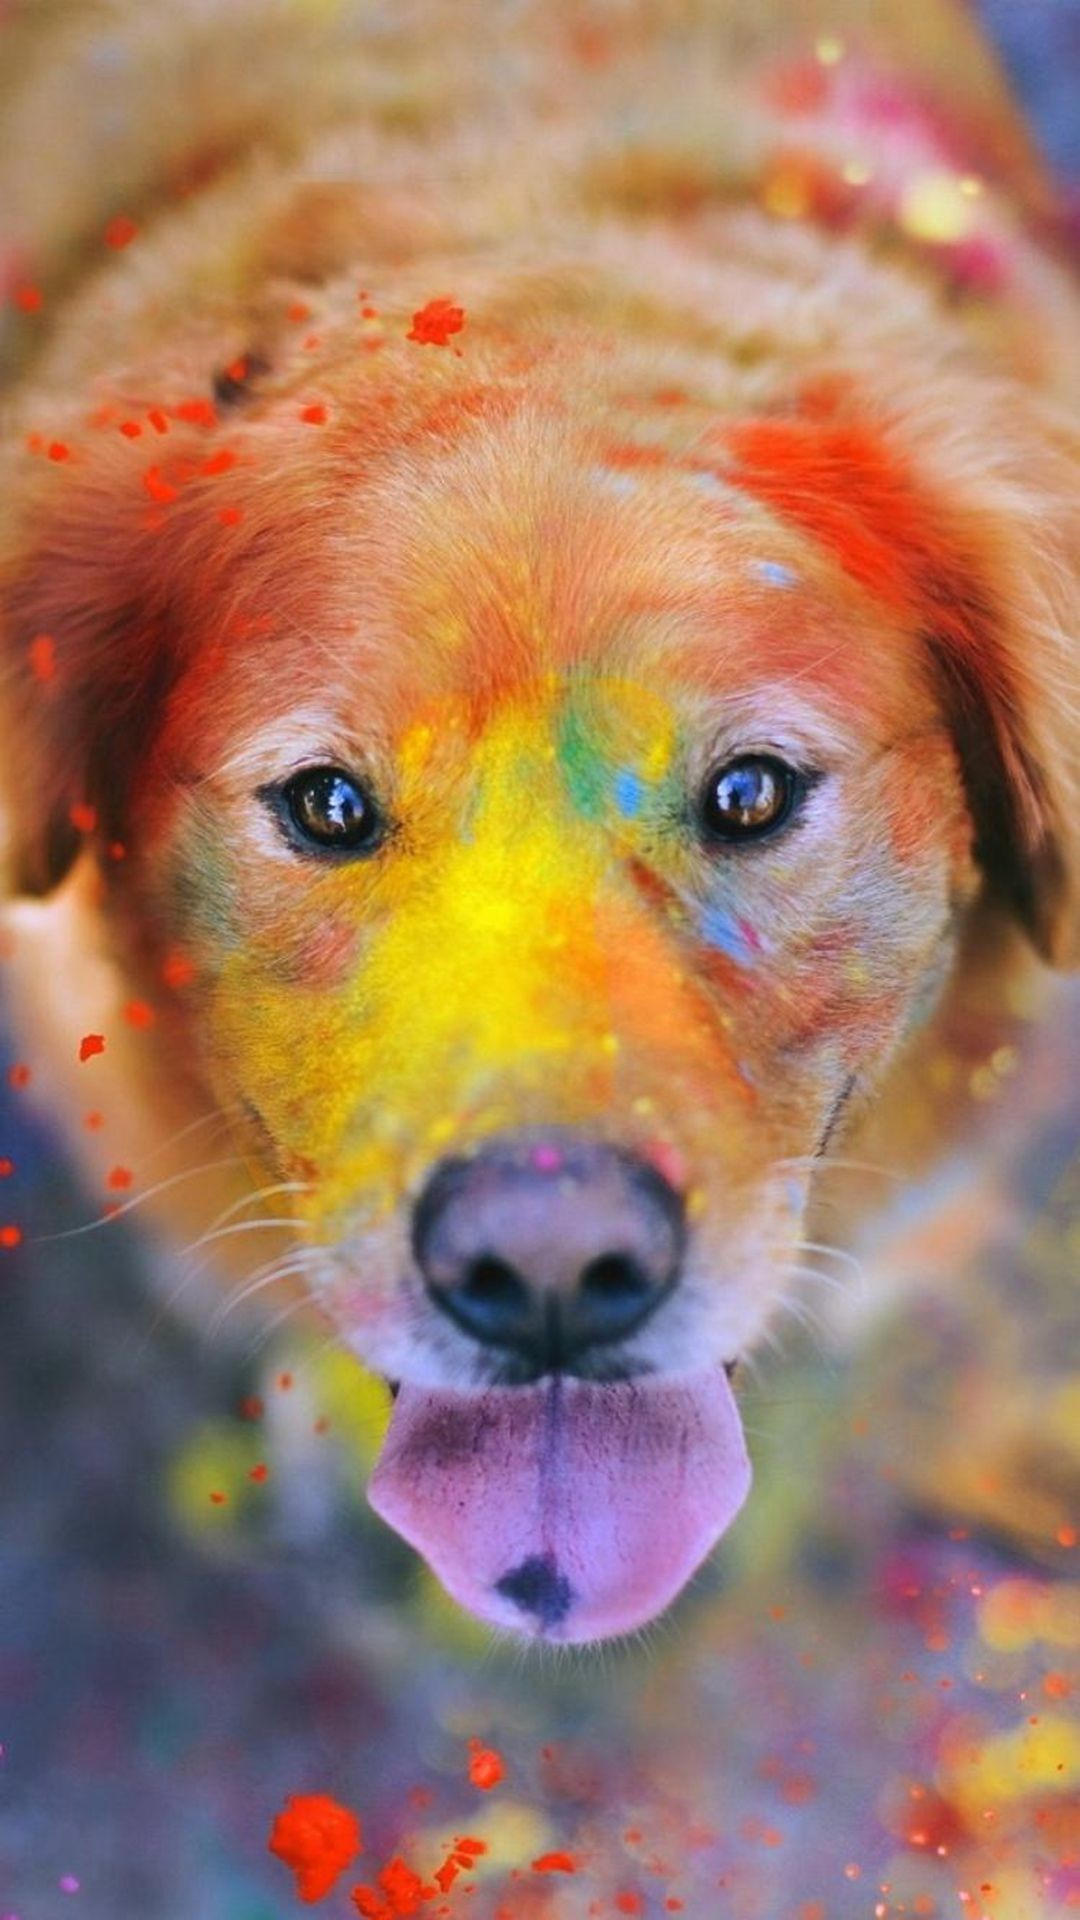 Res: 1080x1920, Colorful Paint Giant Dog Animal iPhone 6 wallpaper